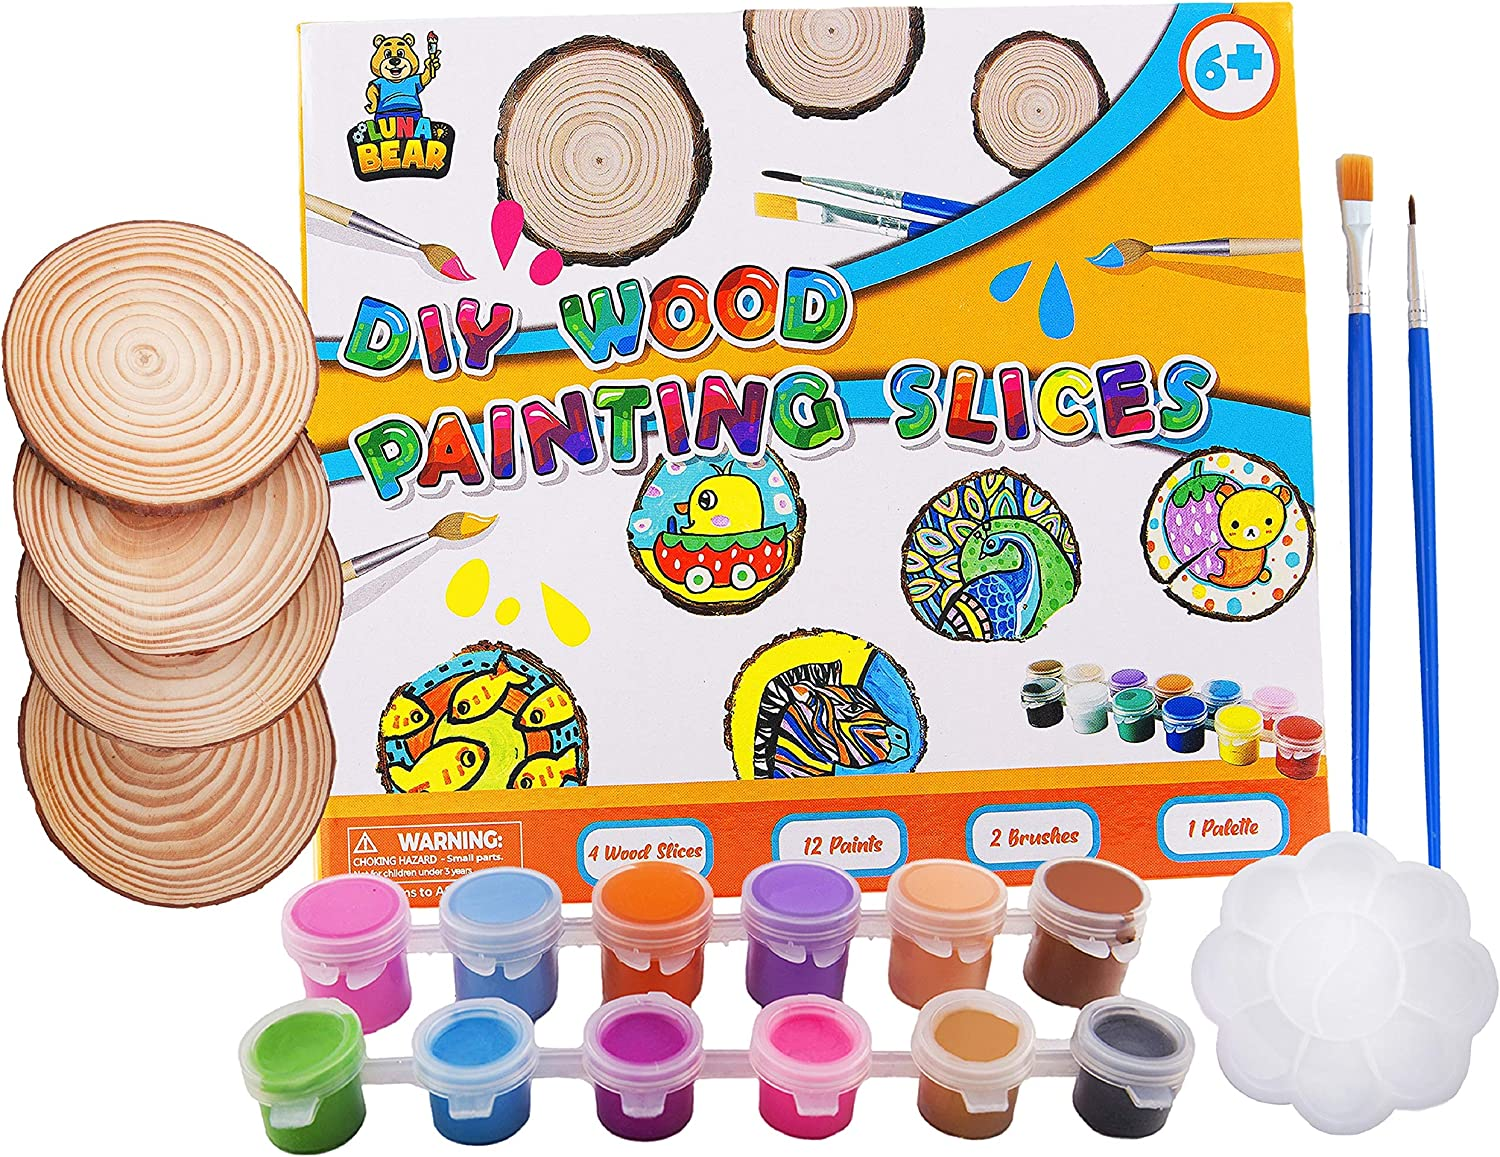 Luna Bear Products - Wood Slice Painting Kit - DIY Arts & Crafts Project Kits for Kids - Make Handmade Ornaments & Decorations - Includes Unfinished Wood Round Slices, Non-Toxic Paint, & Brushes - 6+